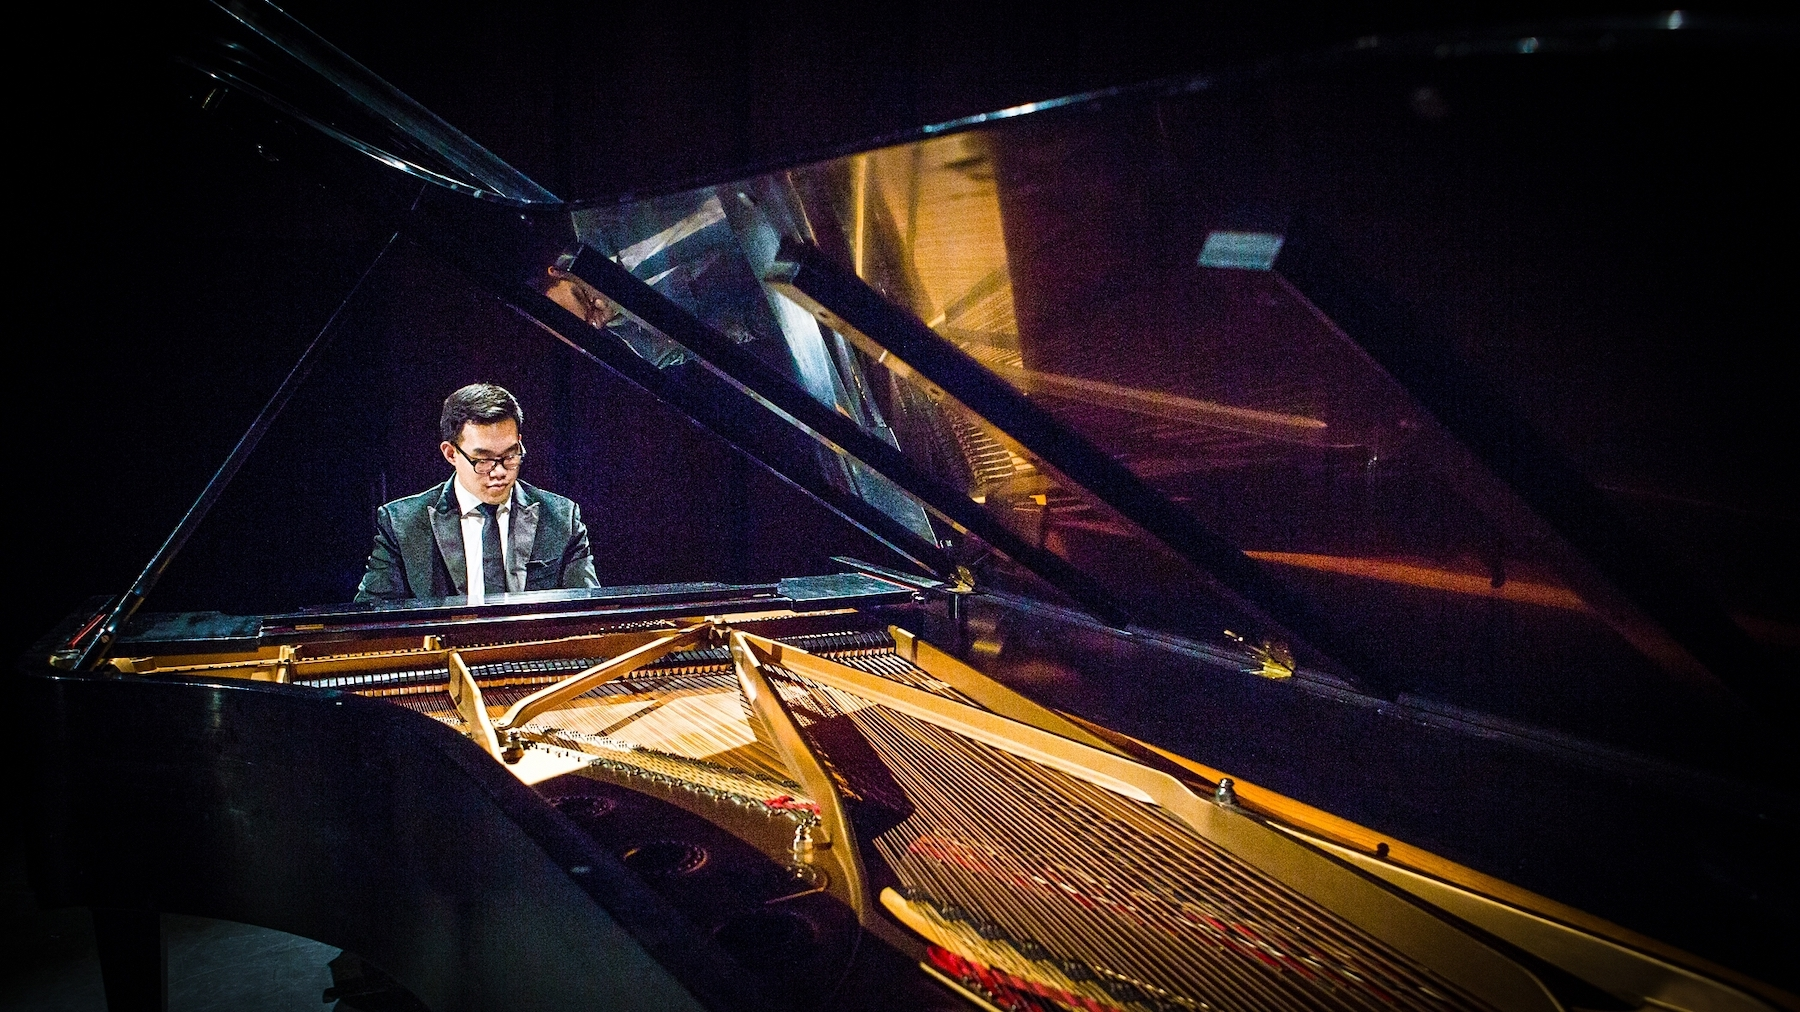 Performing on the legendary piano owned by Vladimir Horowitz.